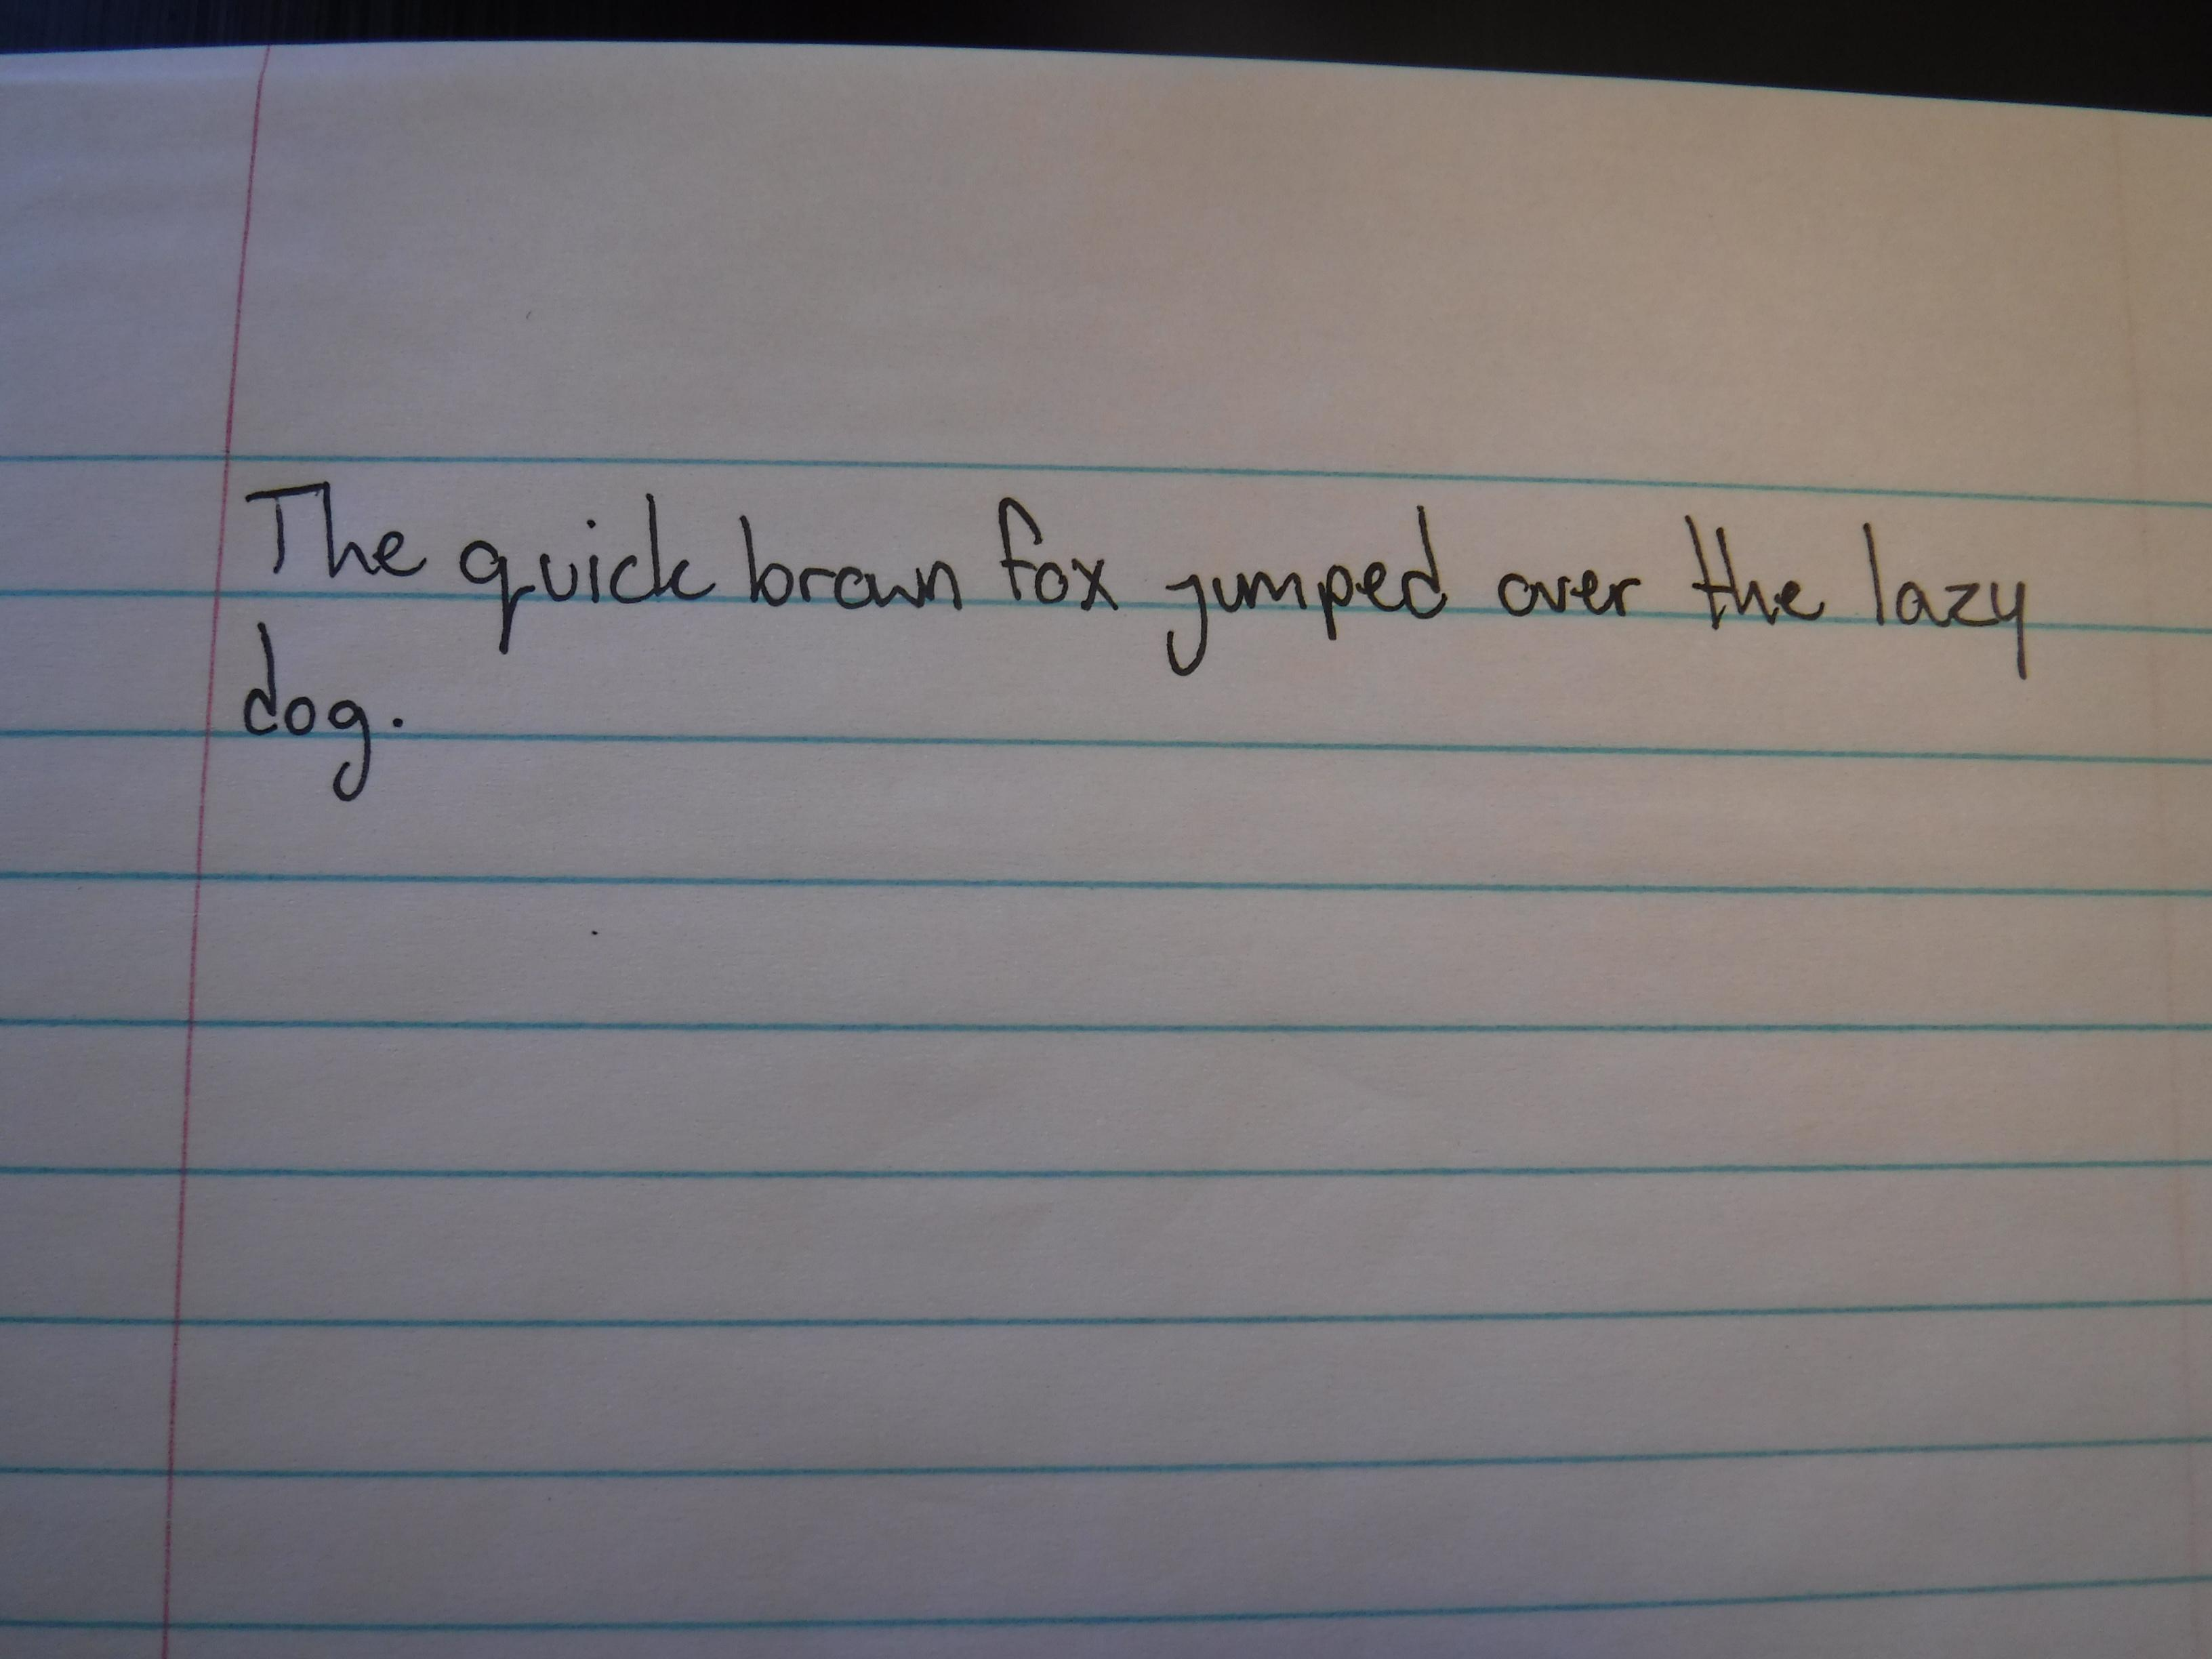 The Quick Brown Fox Jumped Over The Lazy Dog Handwriting